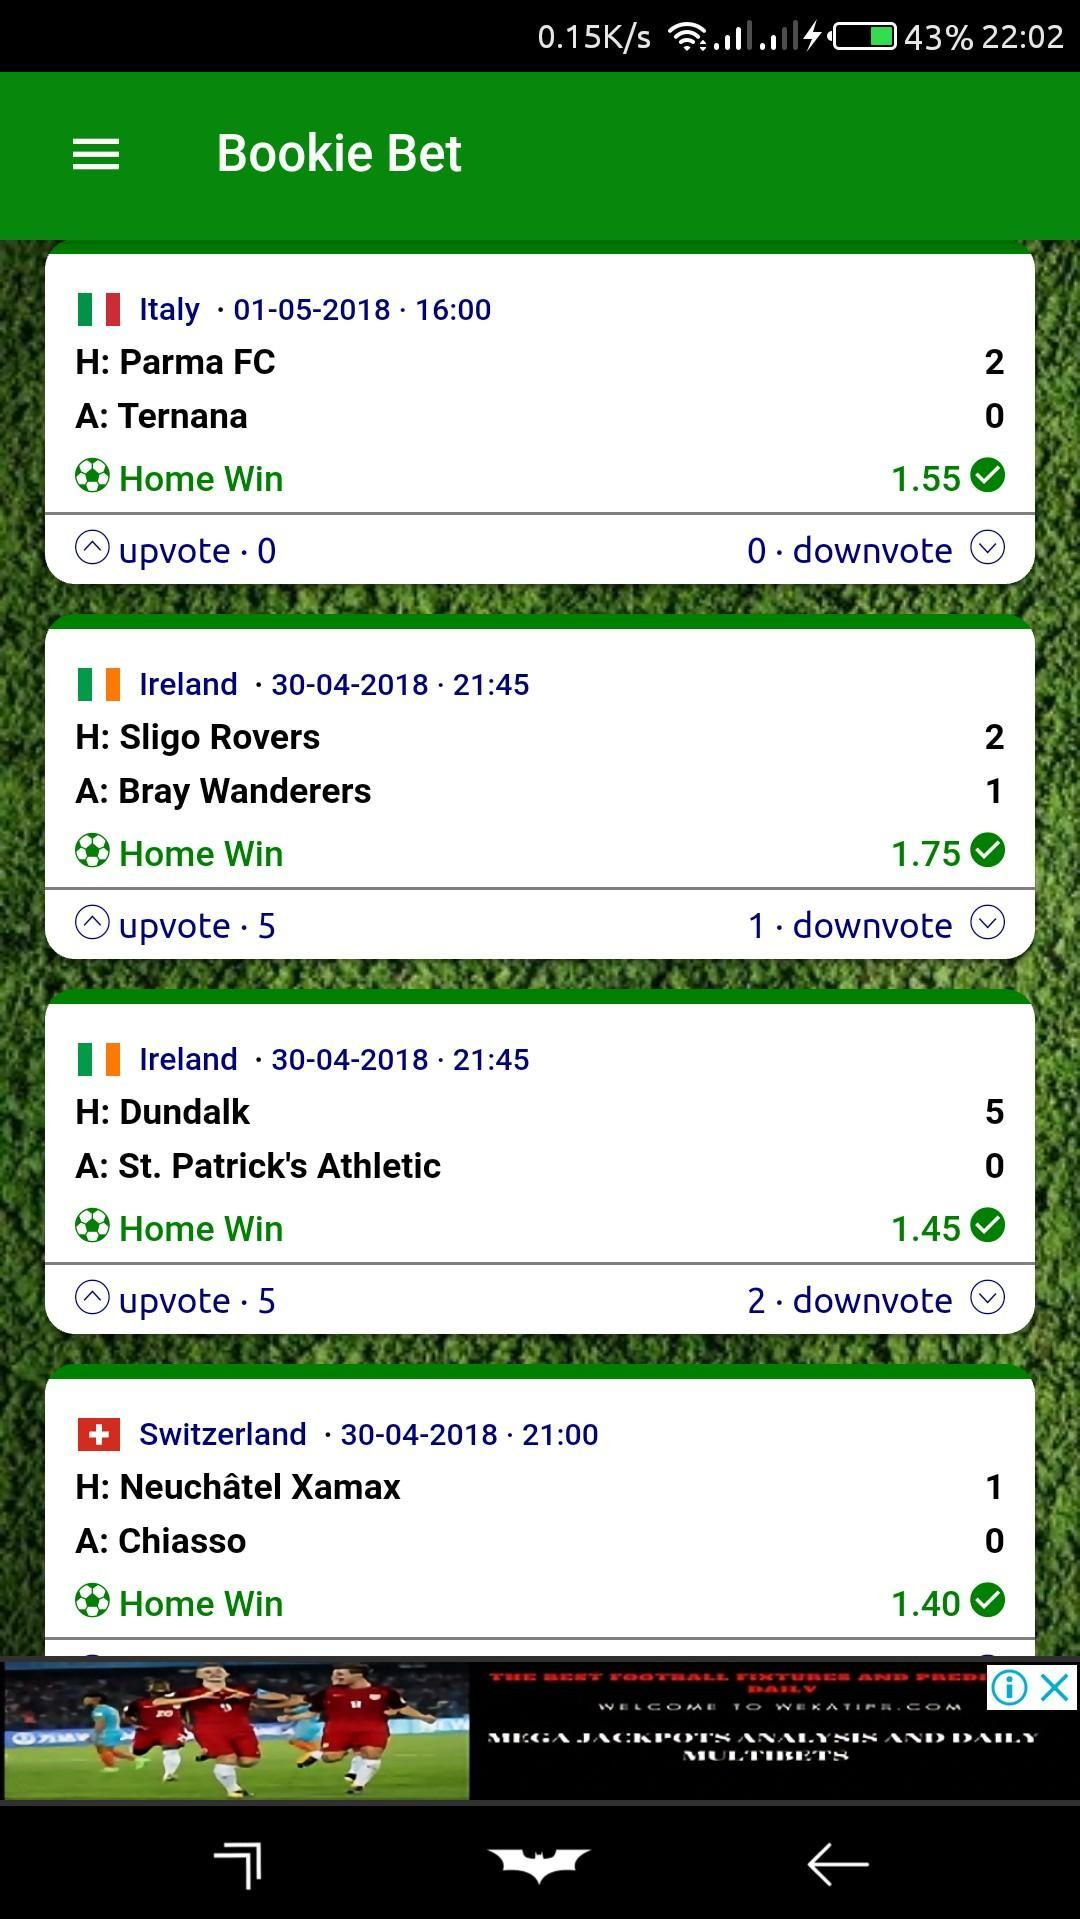 Bookies betting tips disadvantages of betting online